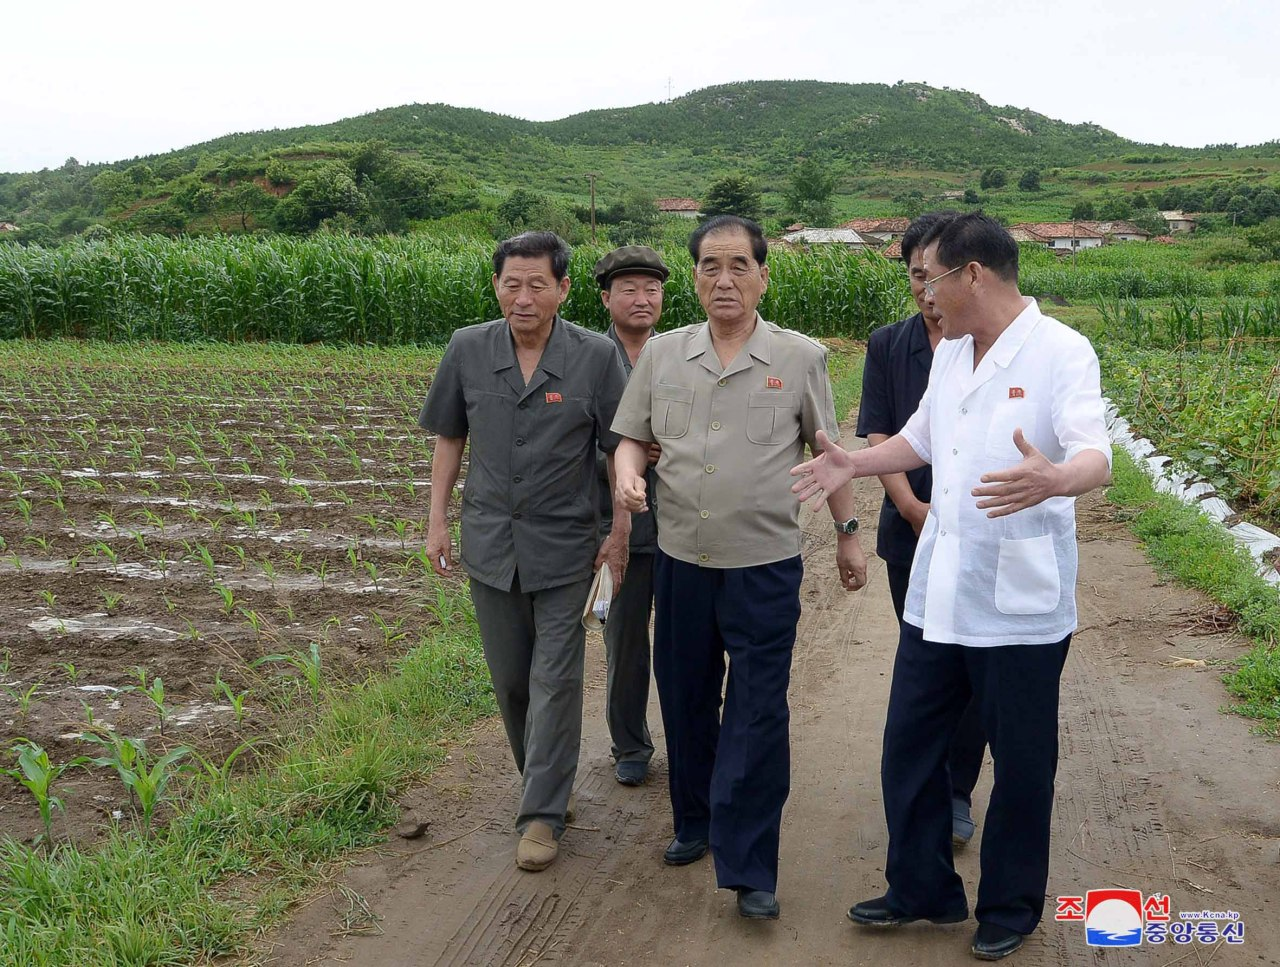 Pak Pong-ju, vice chairman of North Korea's State Affairs Commission, inspects a site for farmland and tideland reclamation in southwestern North Korea in this photo provided by the Korean Central News Agency on July 16, 2019. (Yonhap)